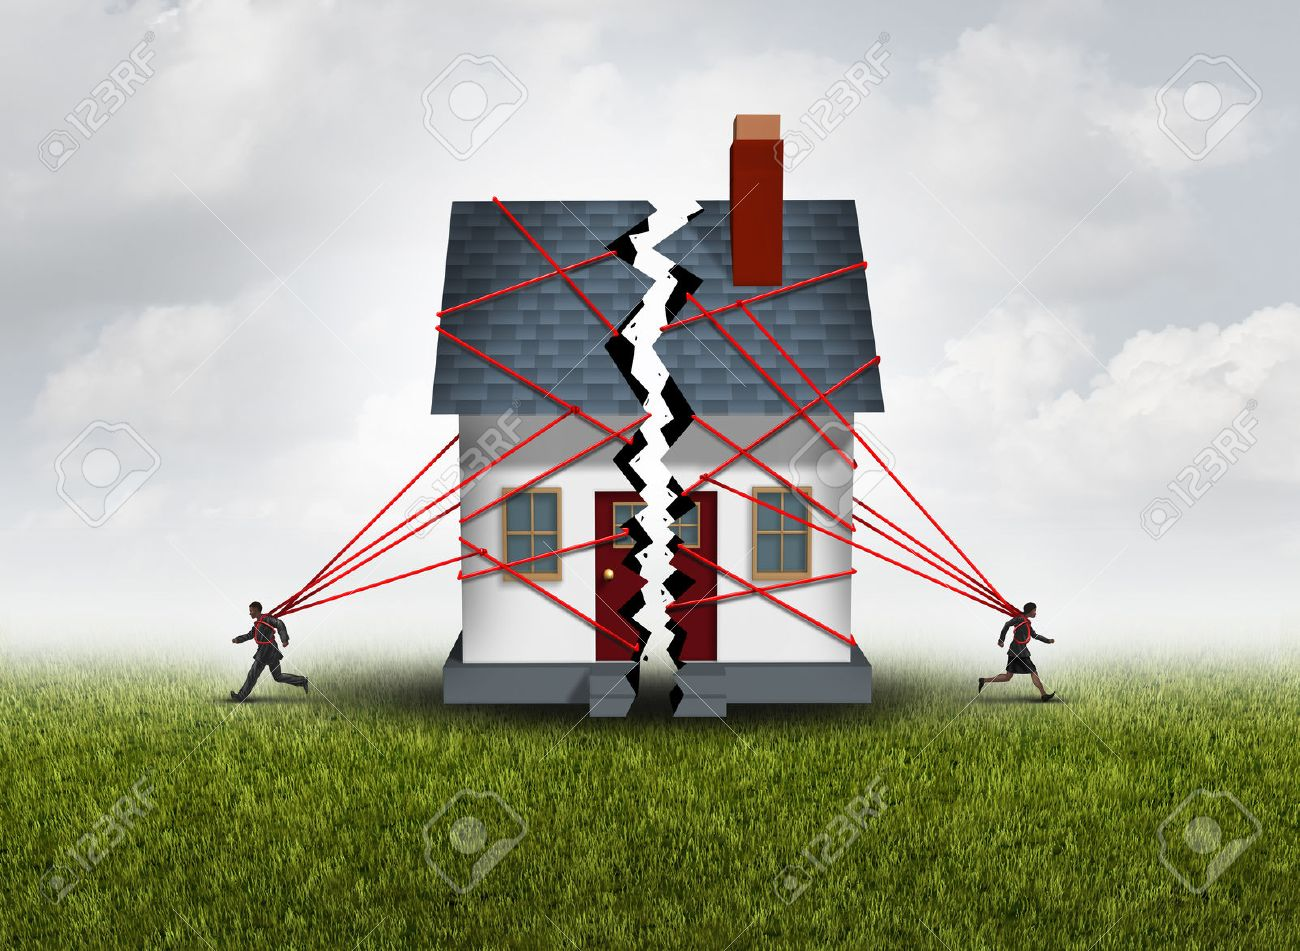 Broken family after a bitter divorce settlement and separation with a couple in a bad relationship breaking a house apart showing the concept of a marriage dispute and dividing assets with 3D illustration elements. Stock Photo - 64818708